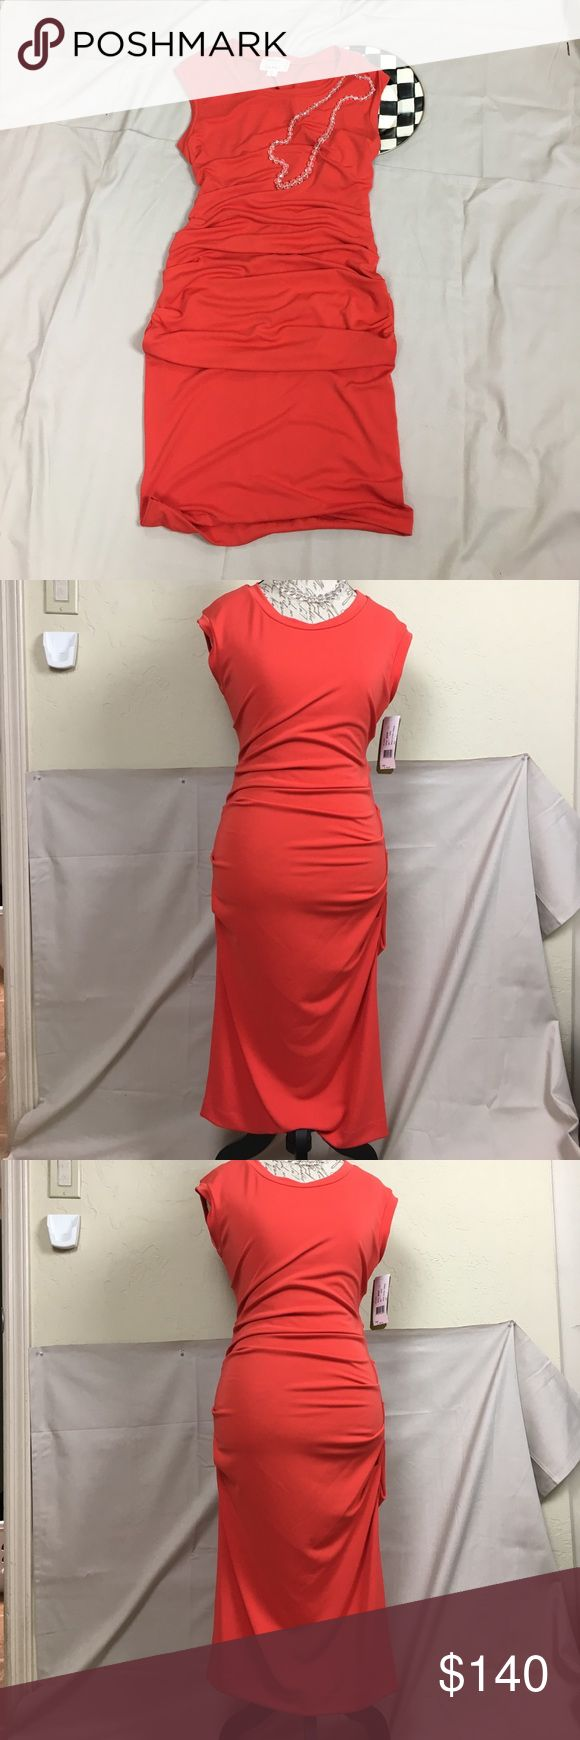 Nicole Miller dress. Tank style dress. Nicole Miller Arteiler designer tank style dress. This is a pull on, no zipper. Note the back. Sexy but not revealing.  Amazing deep orange Jersey material. This won't disappoint. Size L. I am about a 8-10 and it fits perfectly. IVY-2019 Nicole Miller Dresses Maxi